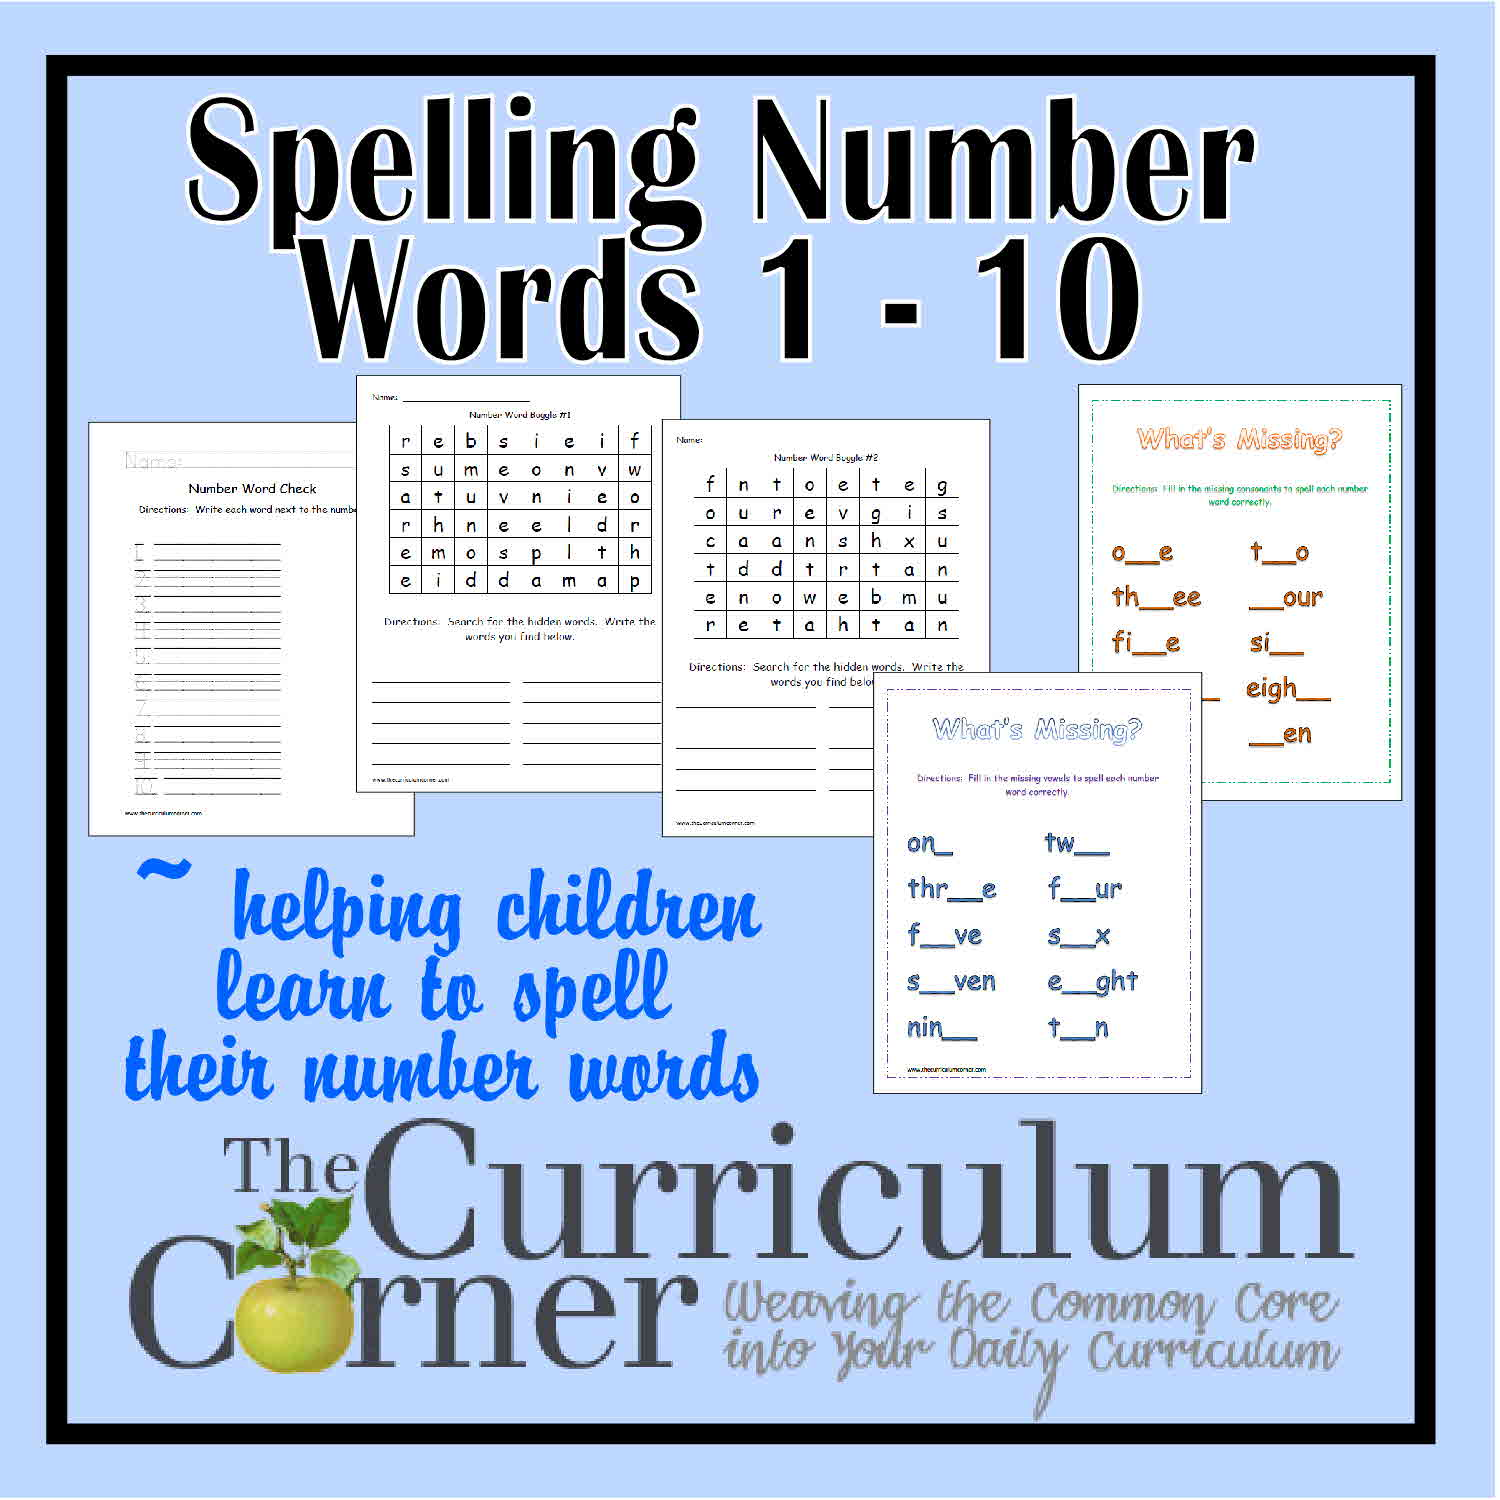 Worksheet Why Is Spelling Important spelling number words 1 10 the curriculum corner 123 kids learn to count at a young age but we often notice many gaps in of believe it is important for students t